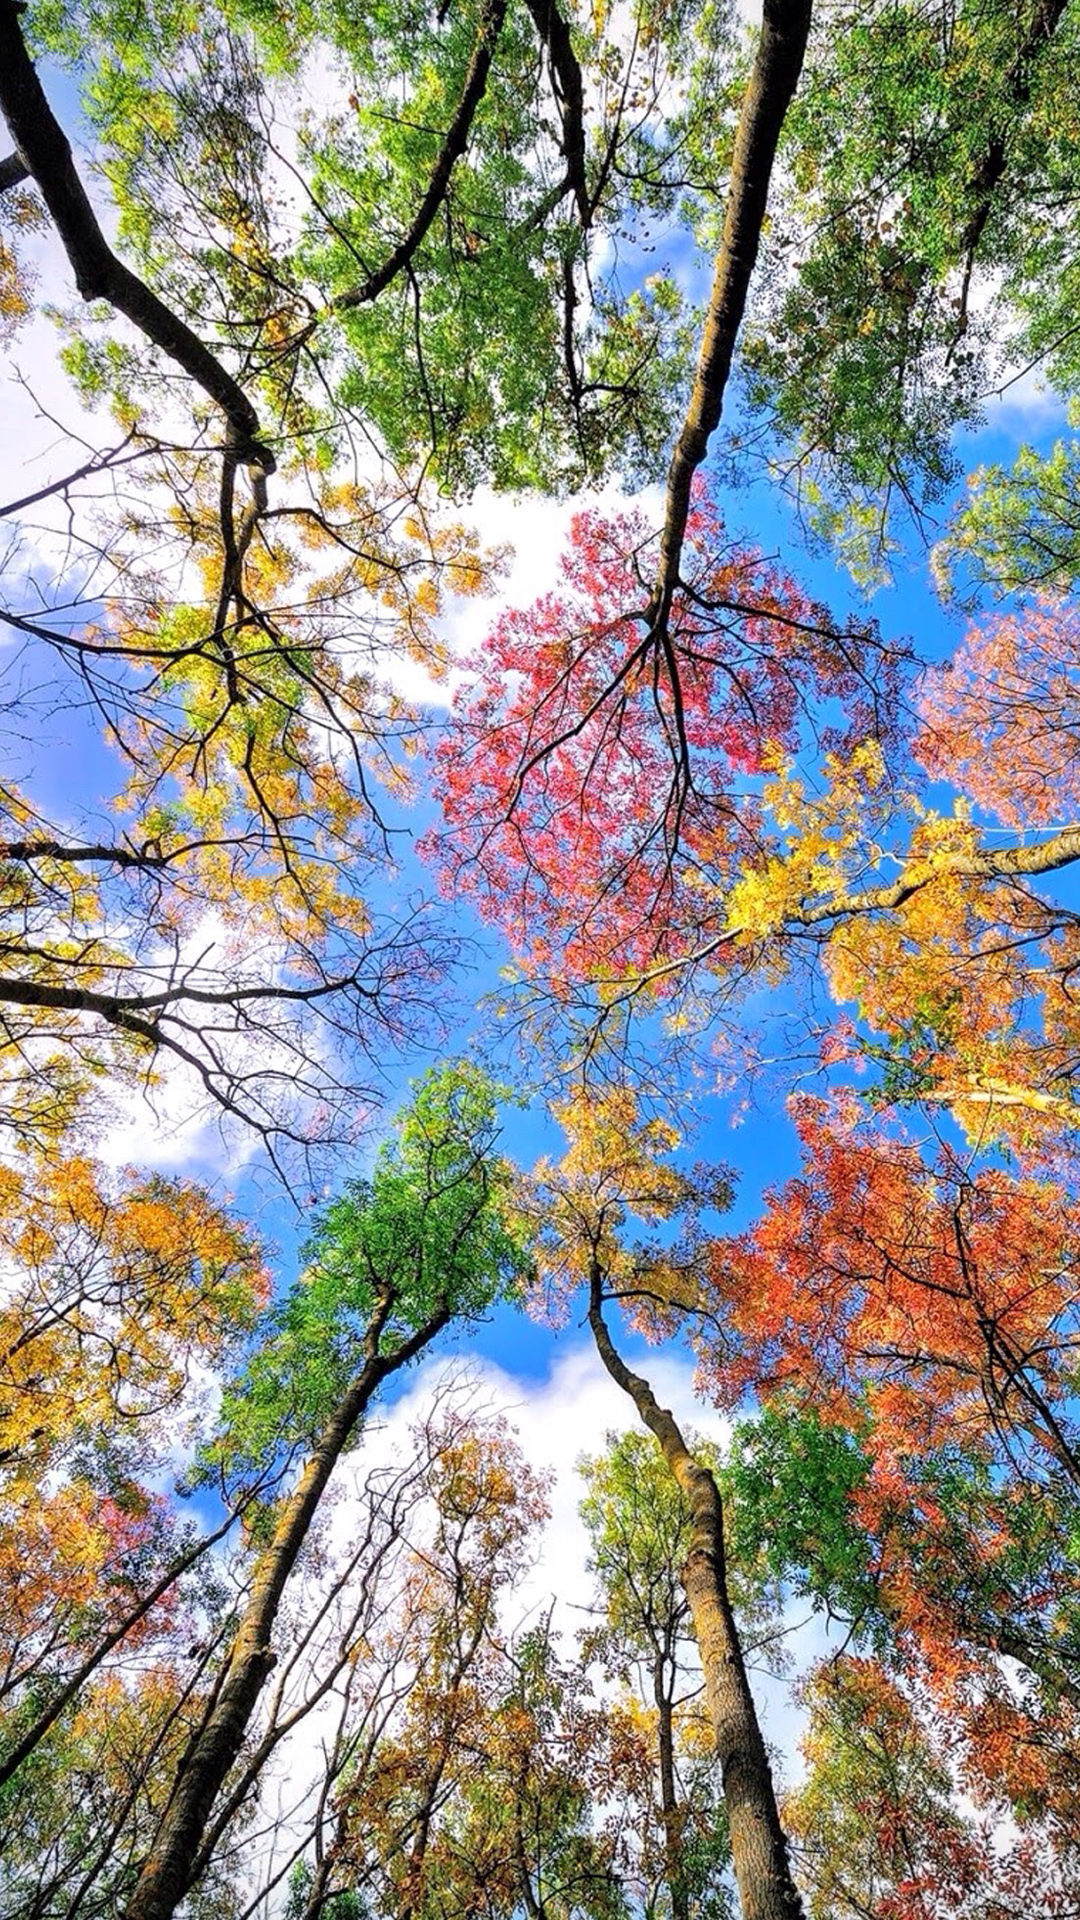 Cool-Phone-with-Colorful-Trees-in-Autumn-Season-wallpaper-wp4004052